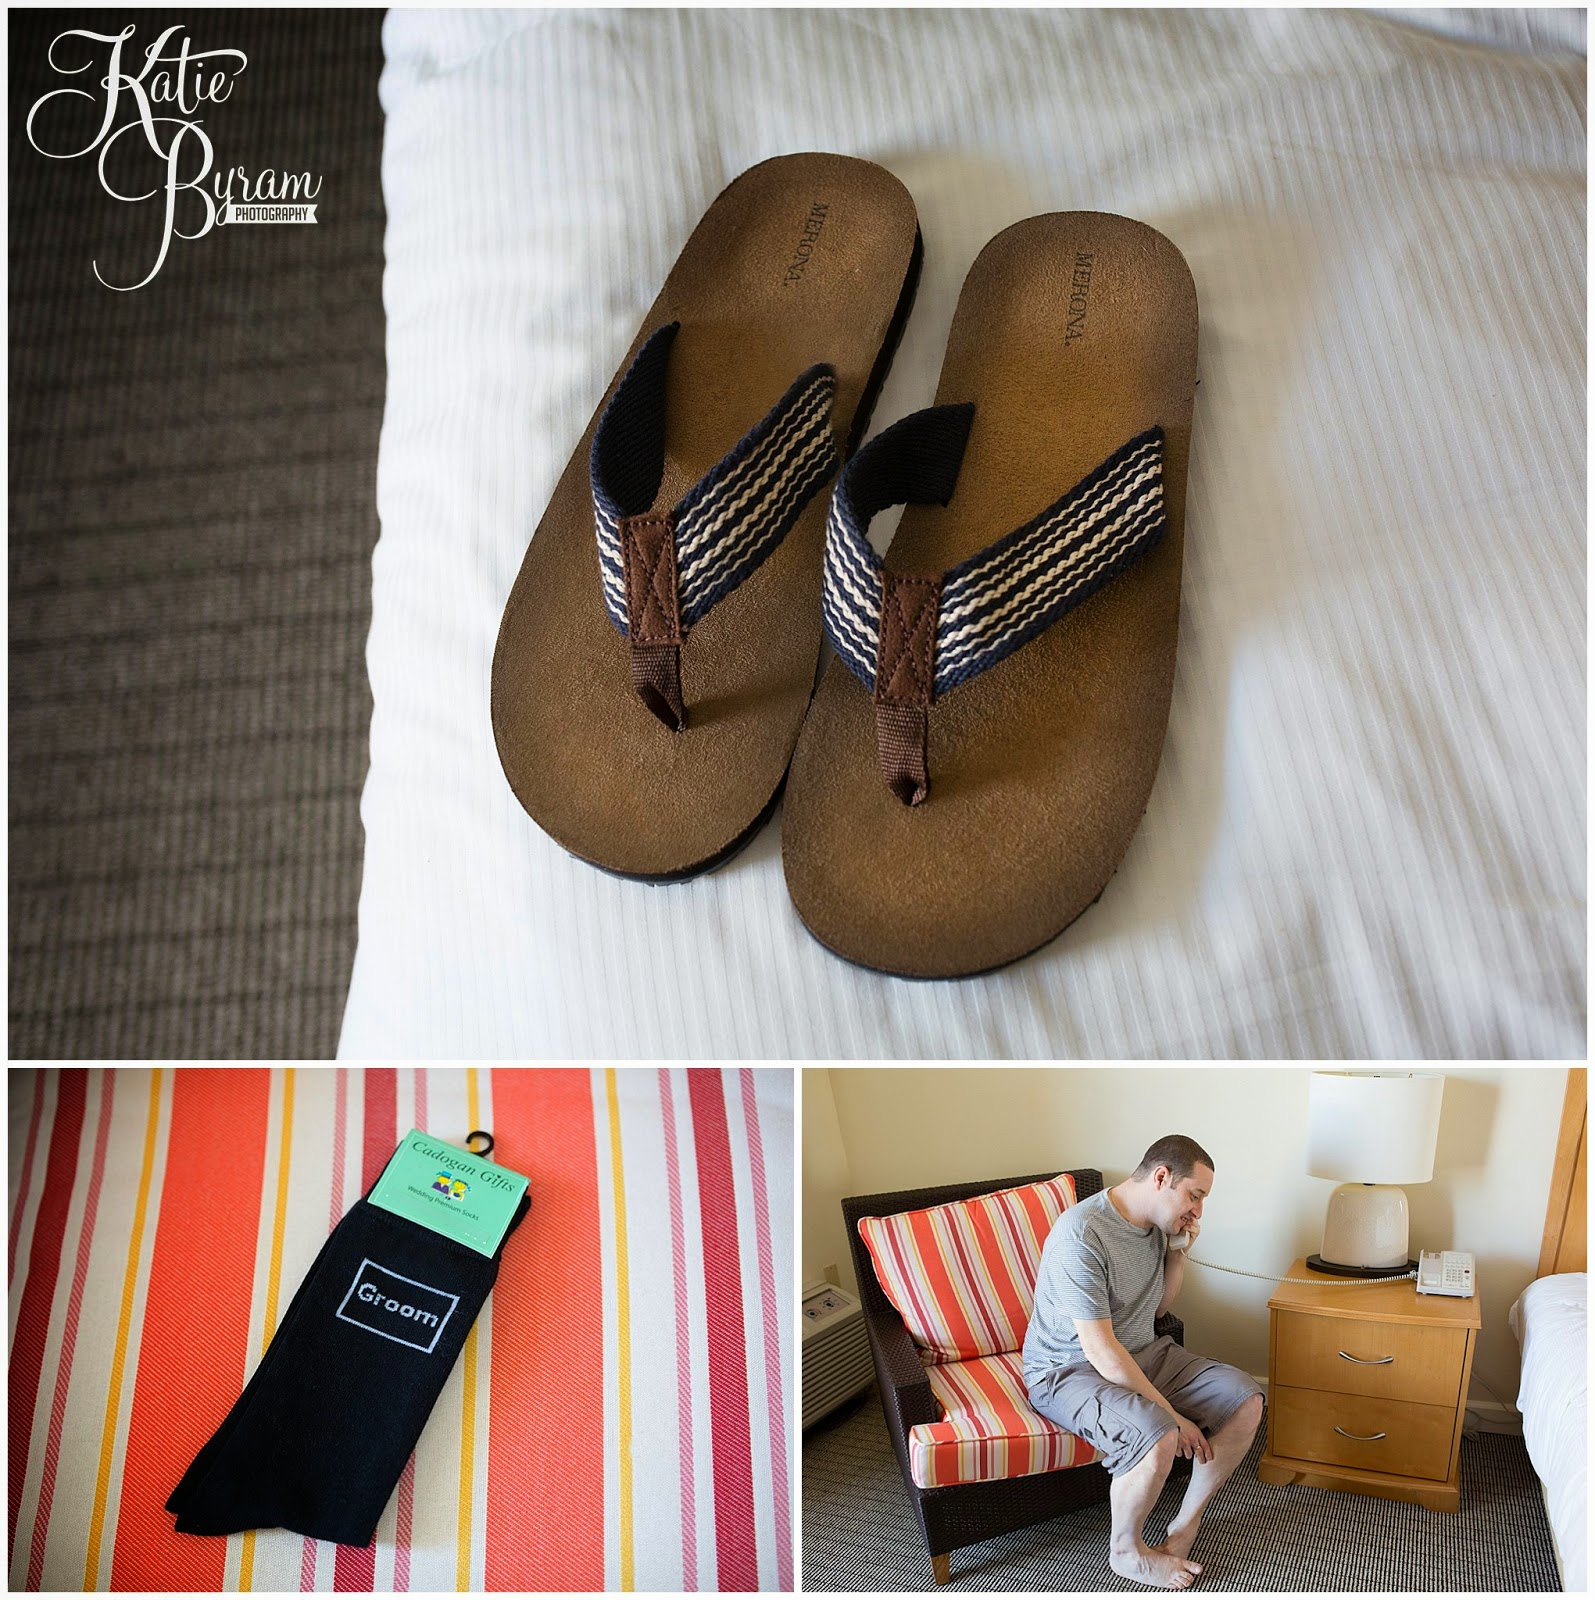 wedding flip flops, groom destination wedding, clearwater beach wedding, hilton clearwater beach wedding, katie byram photography, florida wedding